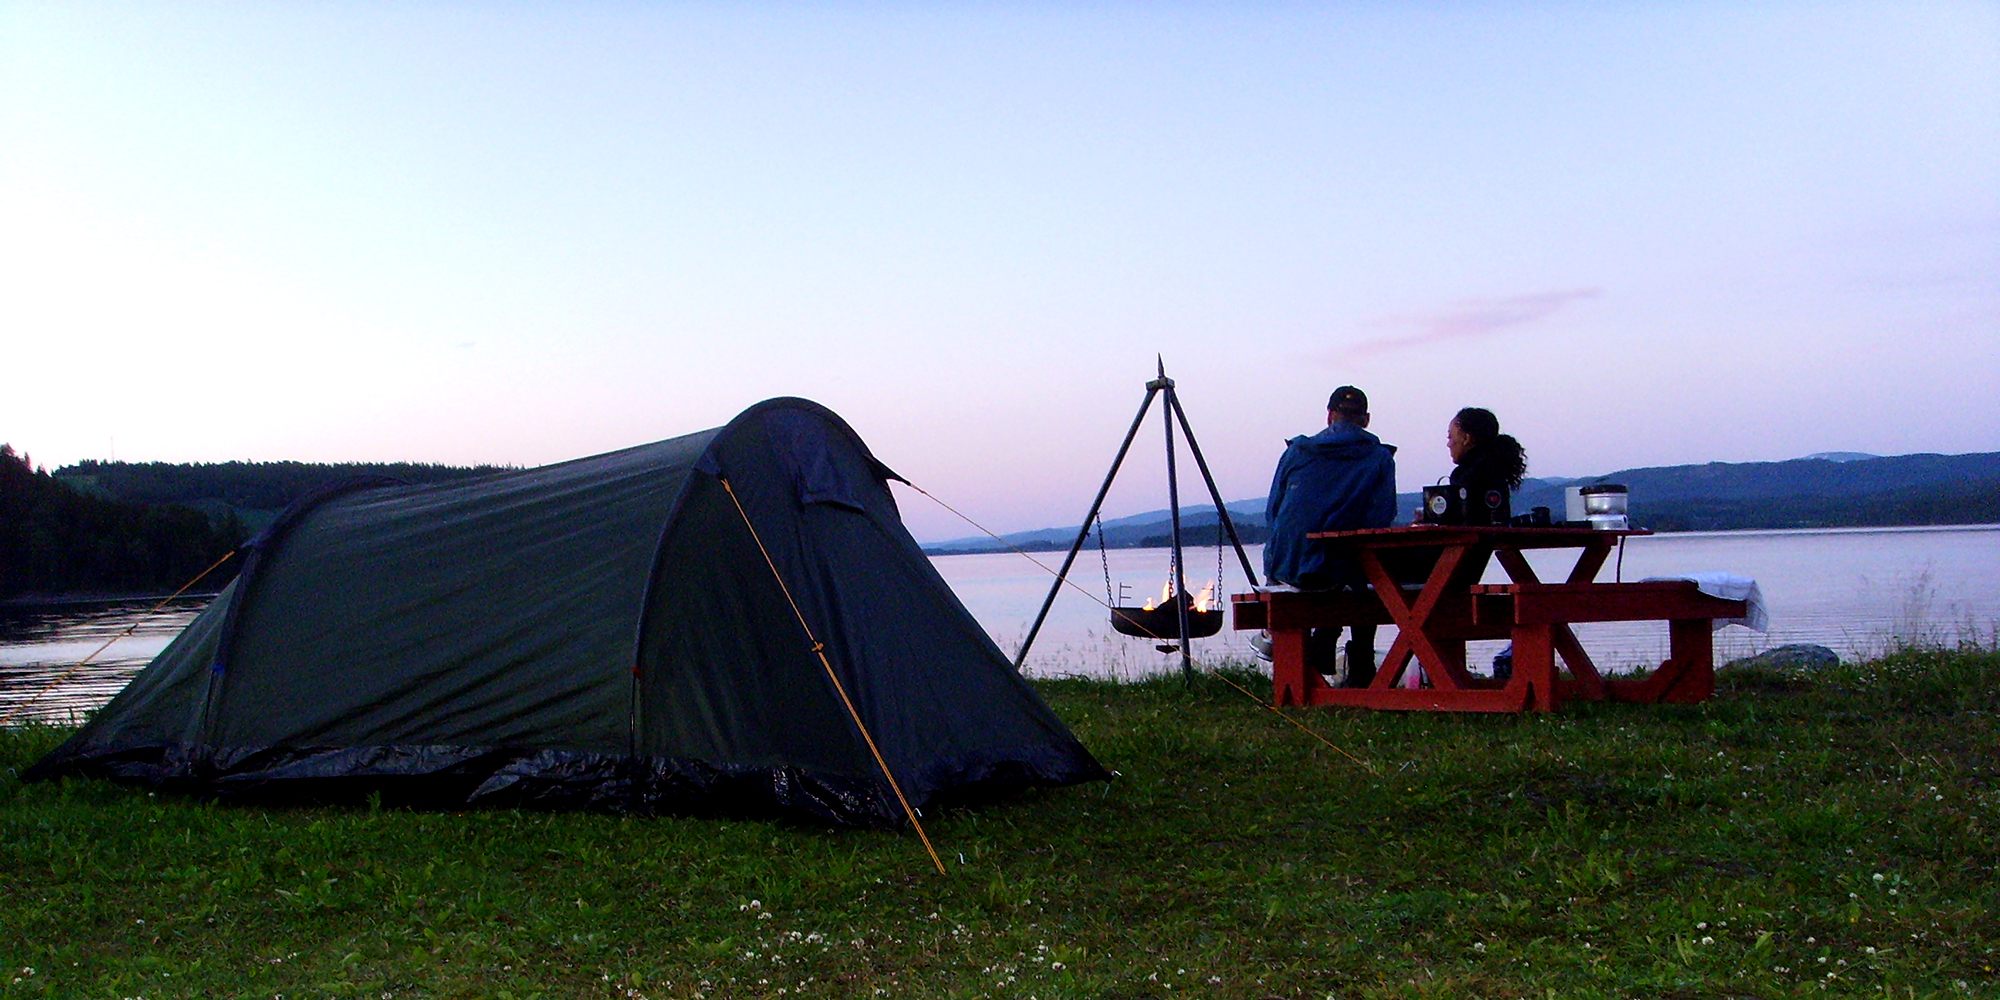 Tenting at Føllingstua by Lake Snåsa. Copyright: Føllingstua Camping